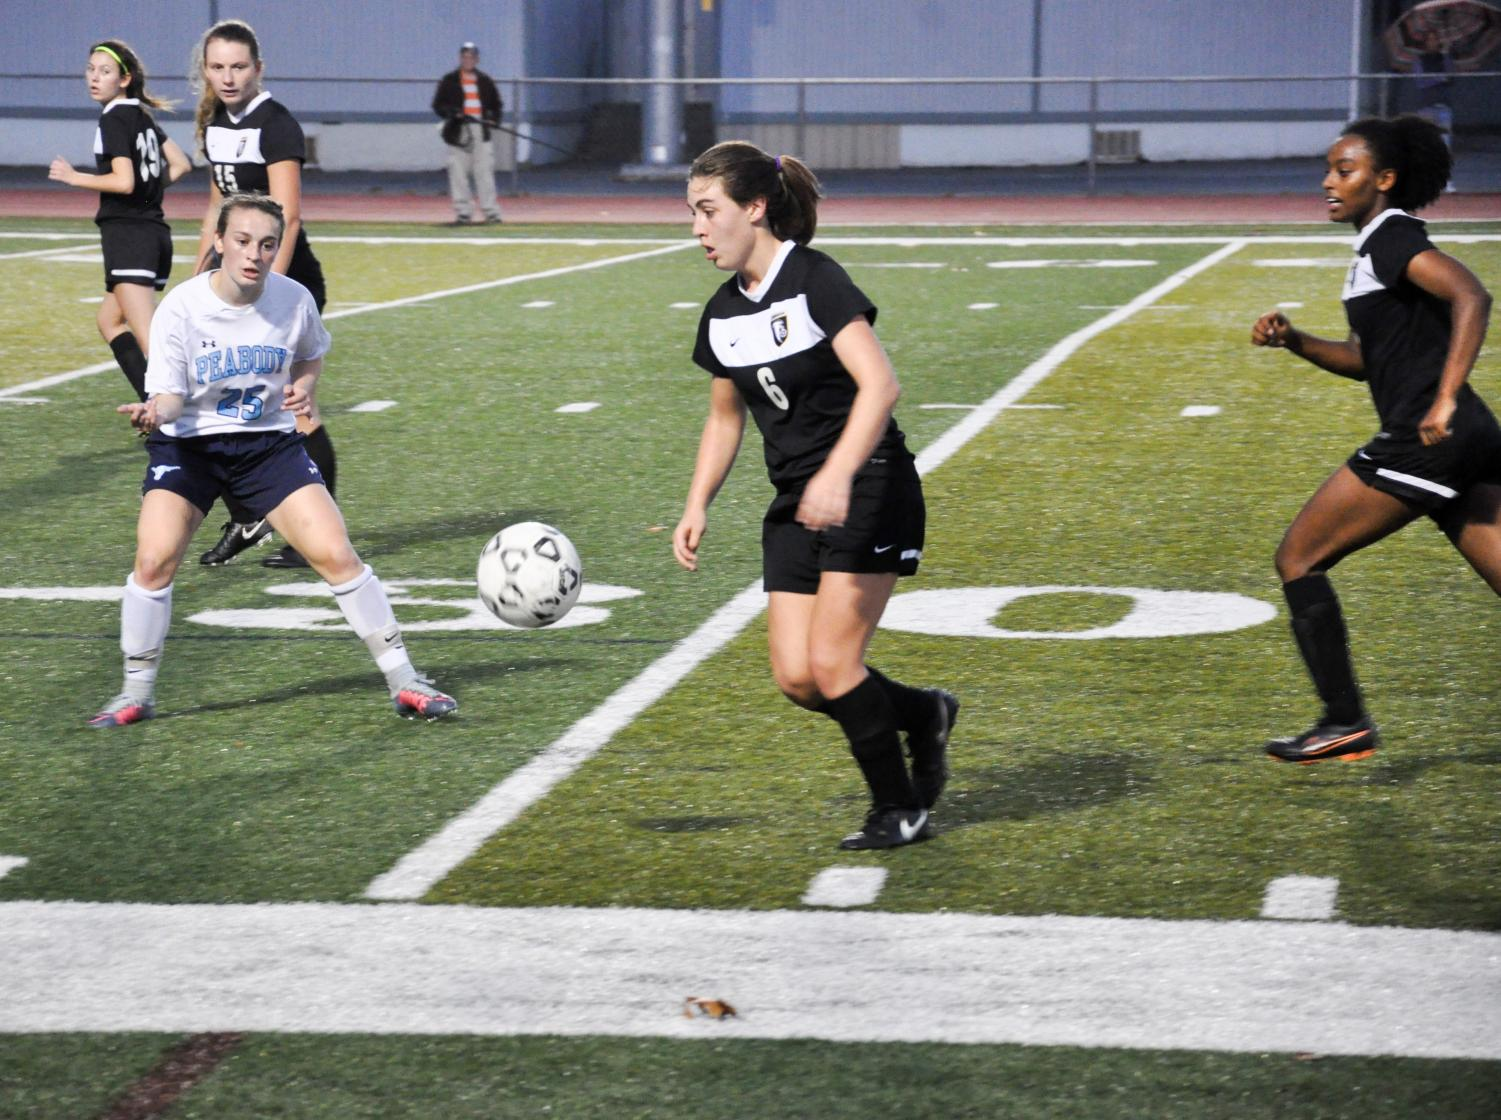 Pictured: The girls soccer state tournament game against Peabody on November 3rd. Peabody won 2-1.